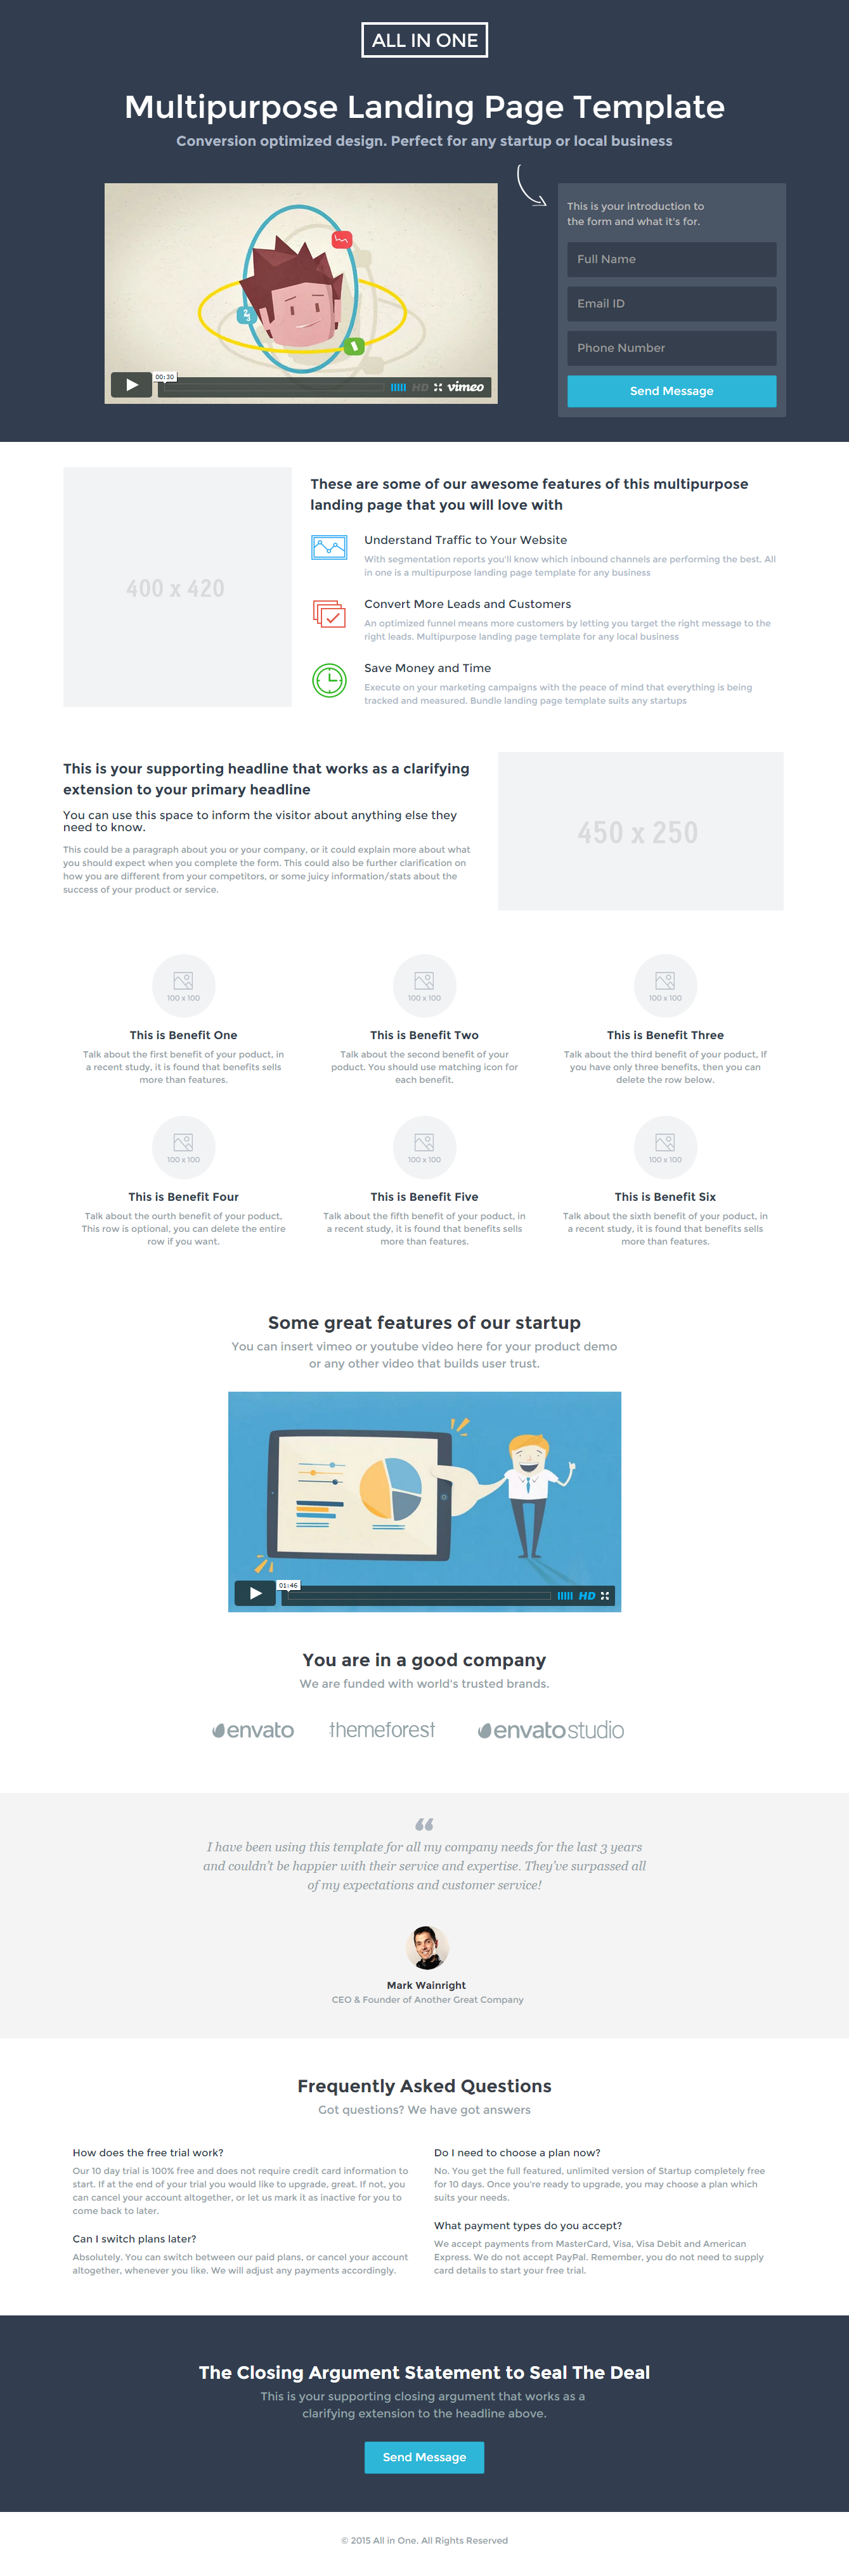 Multipurpose Landing Page Template All In One By Surjithctly - Video landing page templates